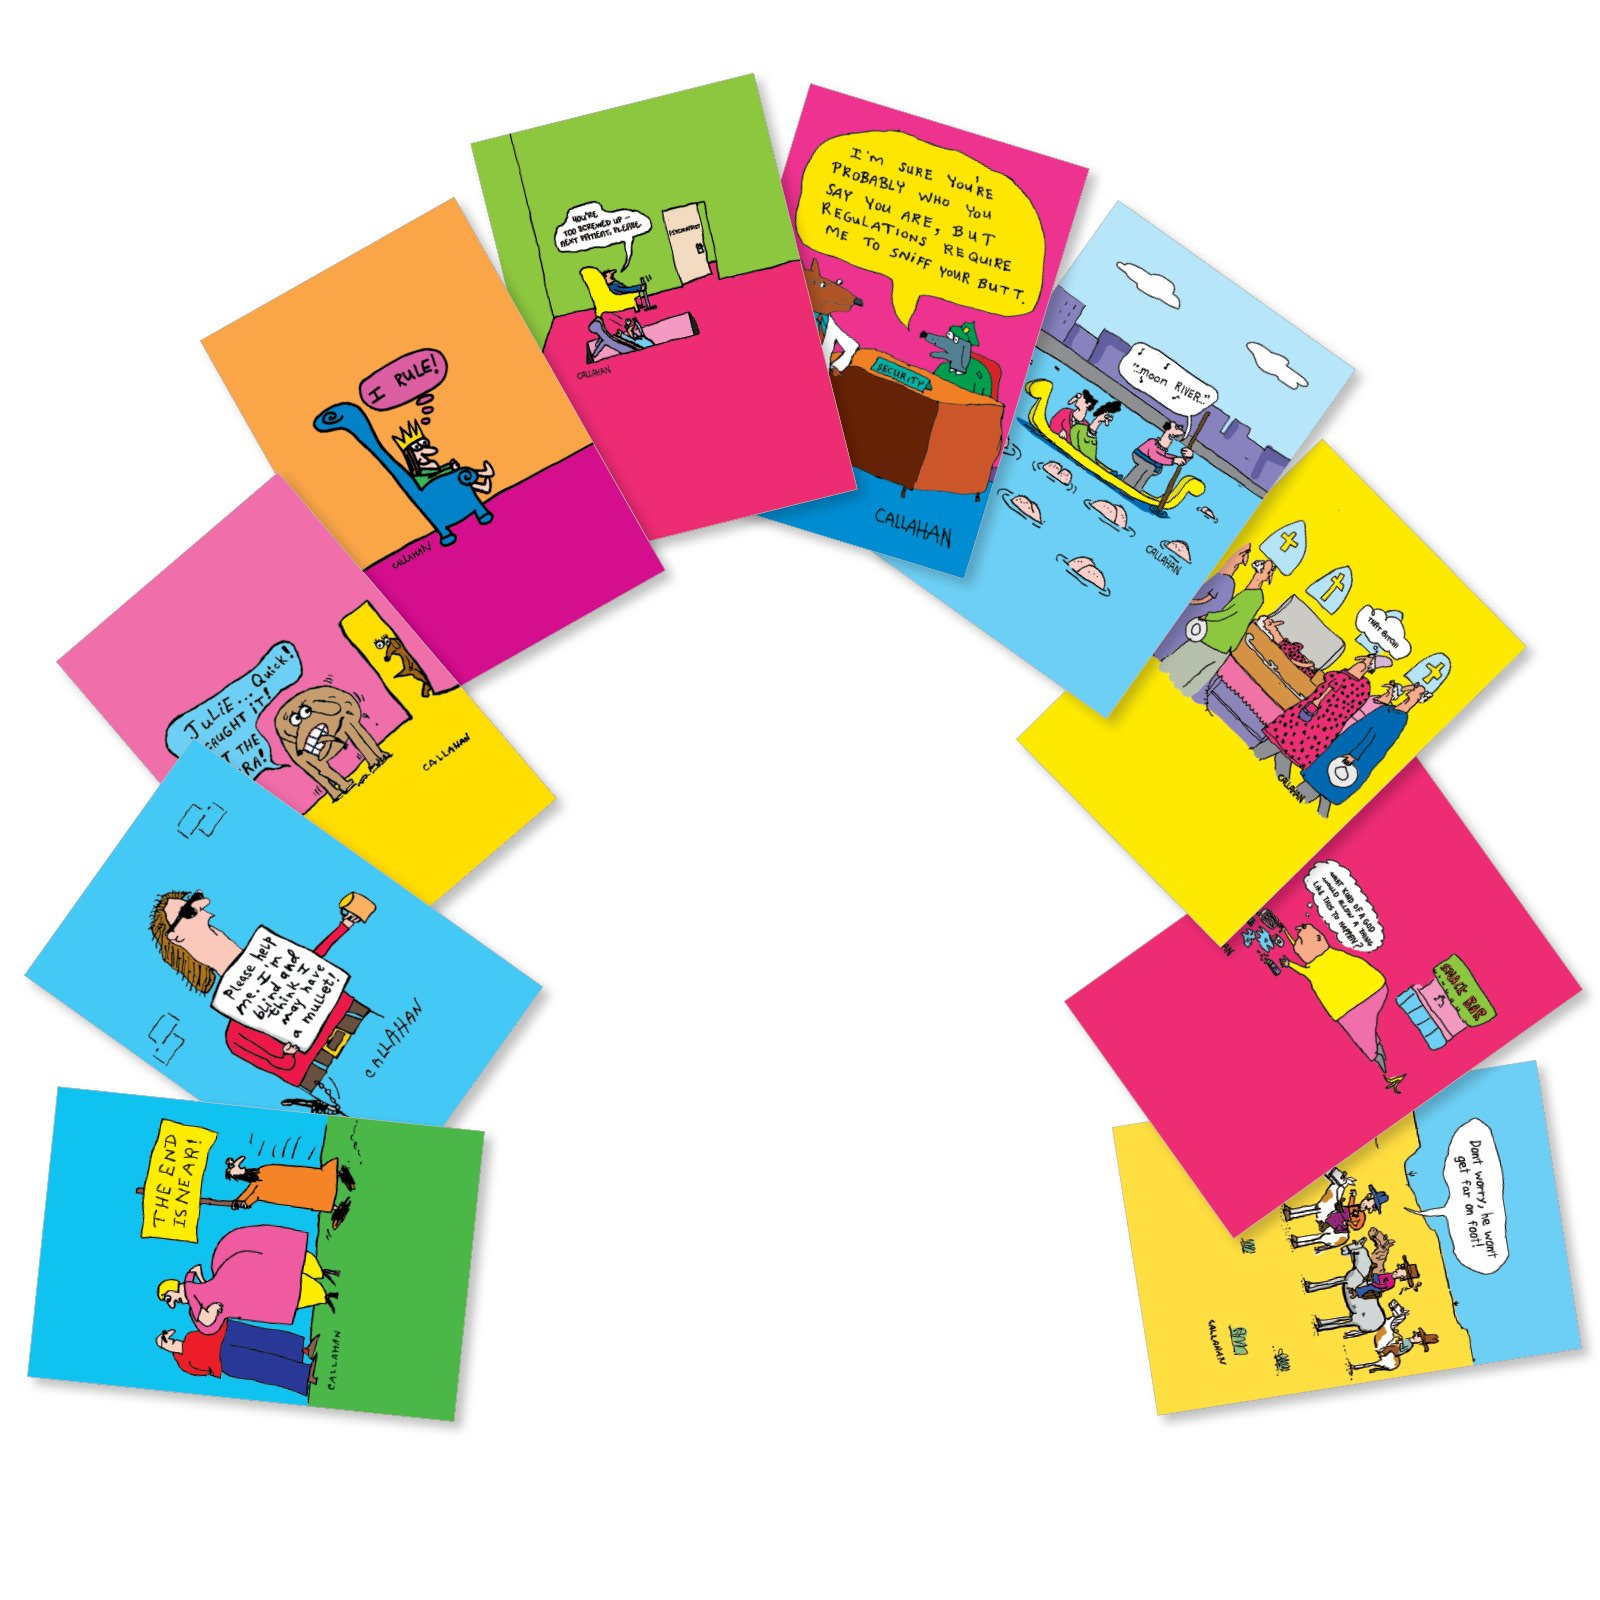 Boxed Variety of 10 He Won't Get Far on Foot Greetings - Funny Happy Birthday Cards with Envelopes - Assorted Set of Adult Humor Note Cards Bday Stationery Notecards 4.63 x 6.75 inch AC6222BDG-B1x10